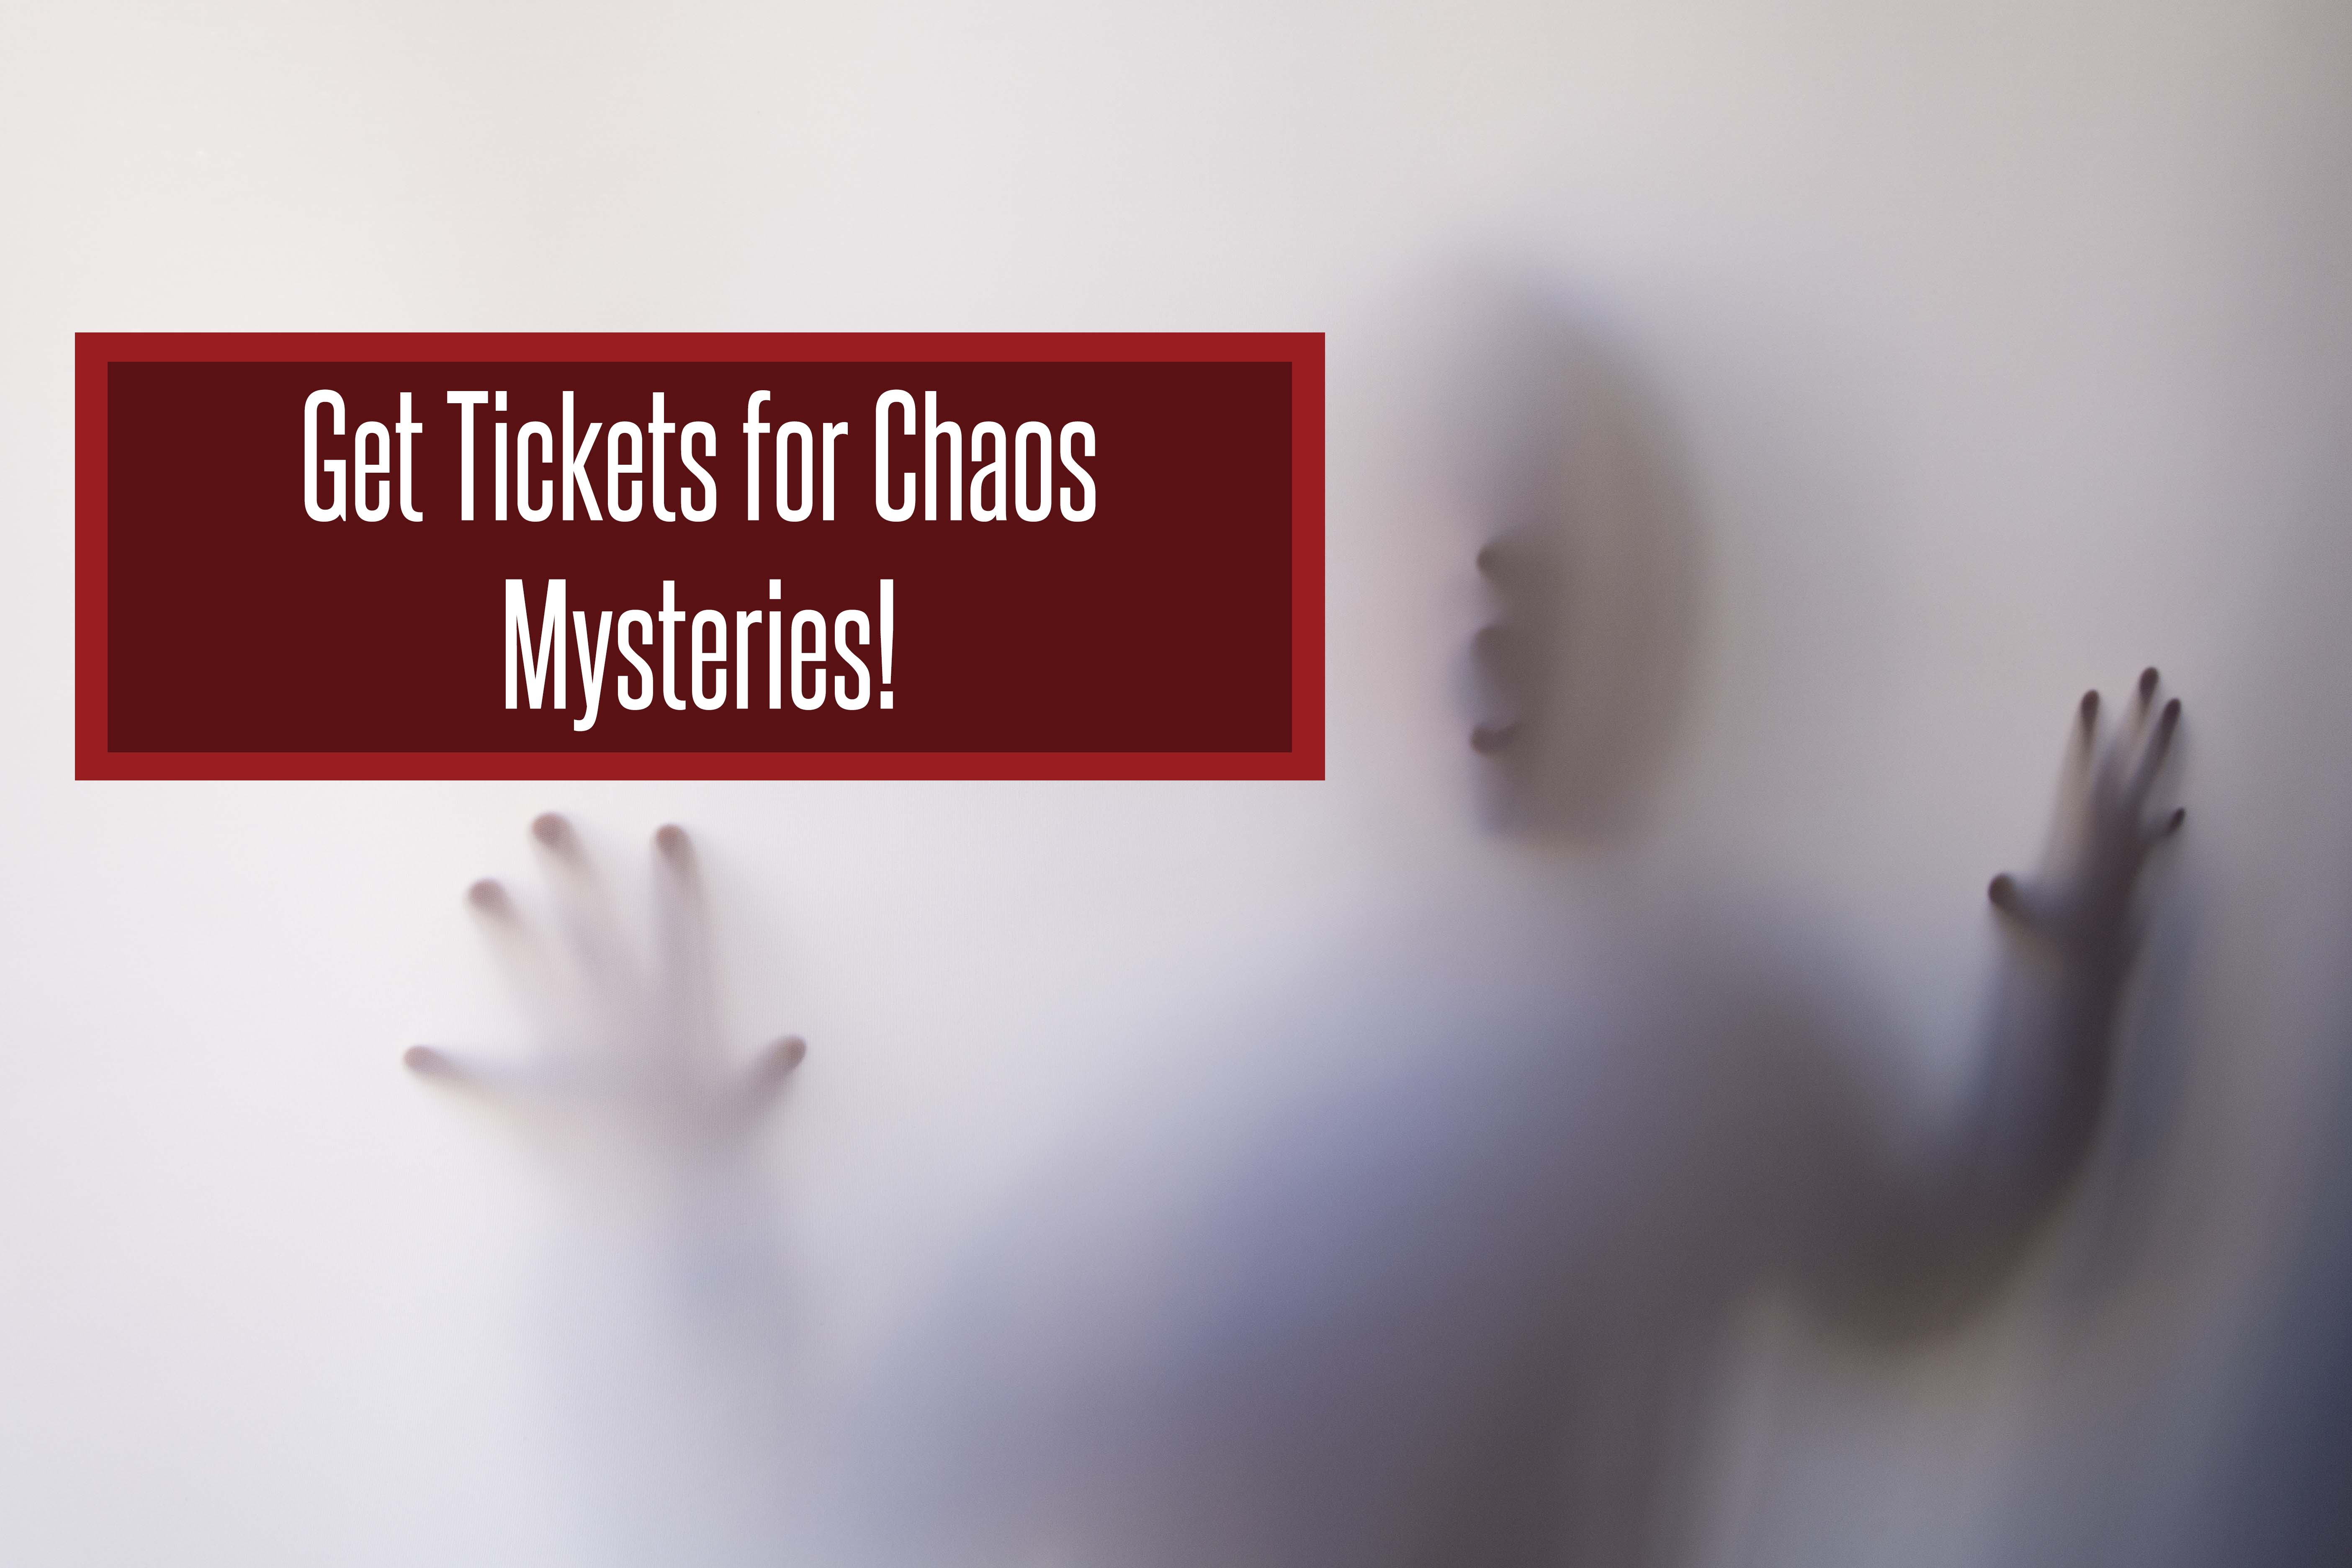 Get tickets for chaos mystery theathre